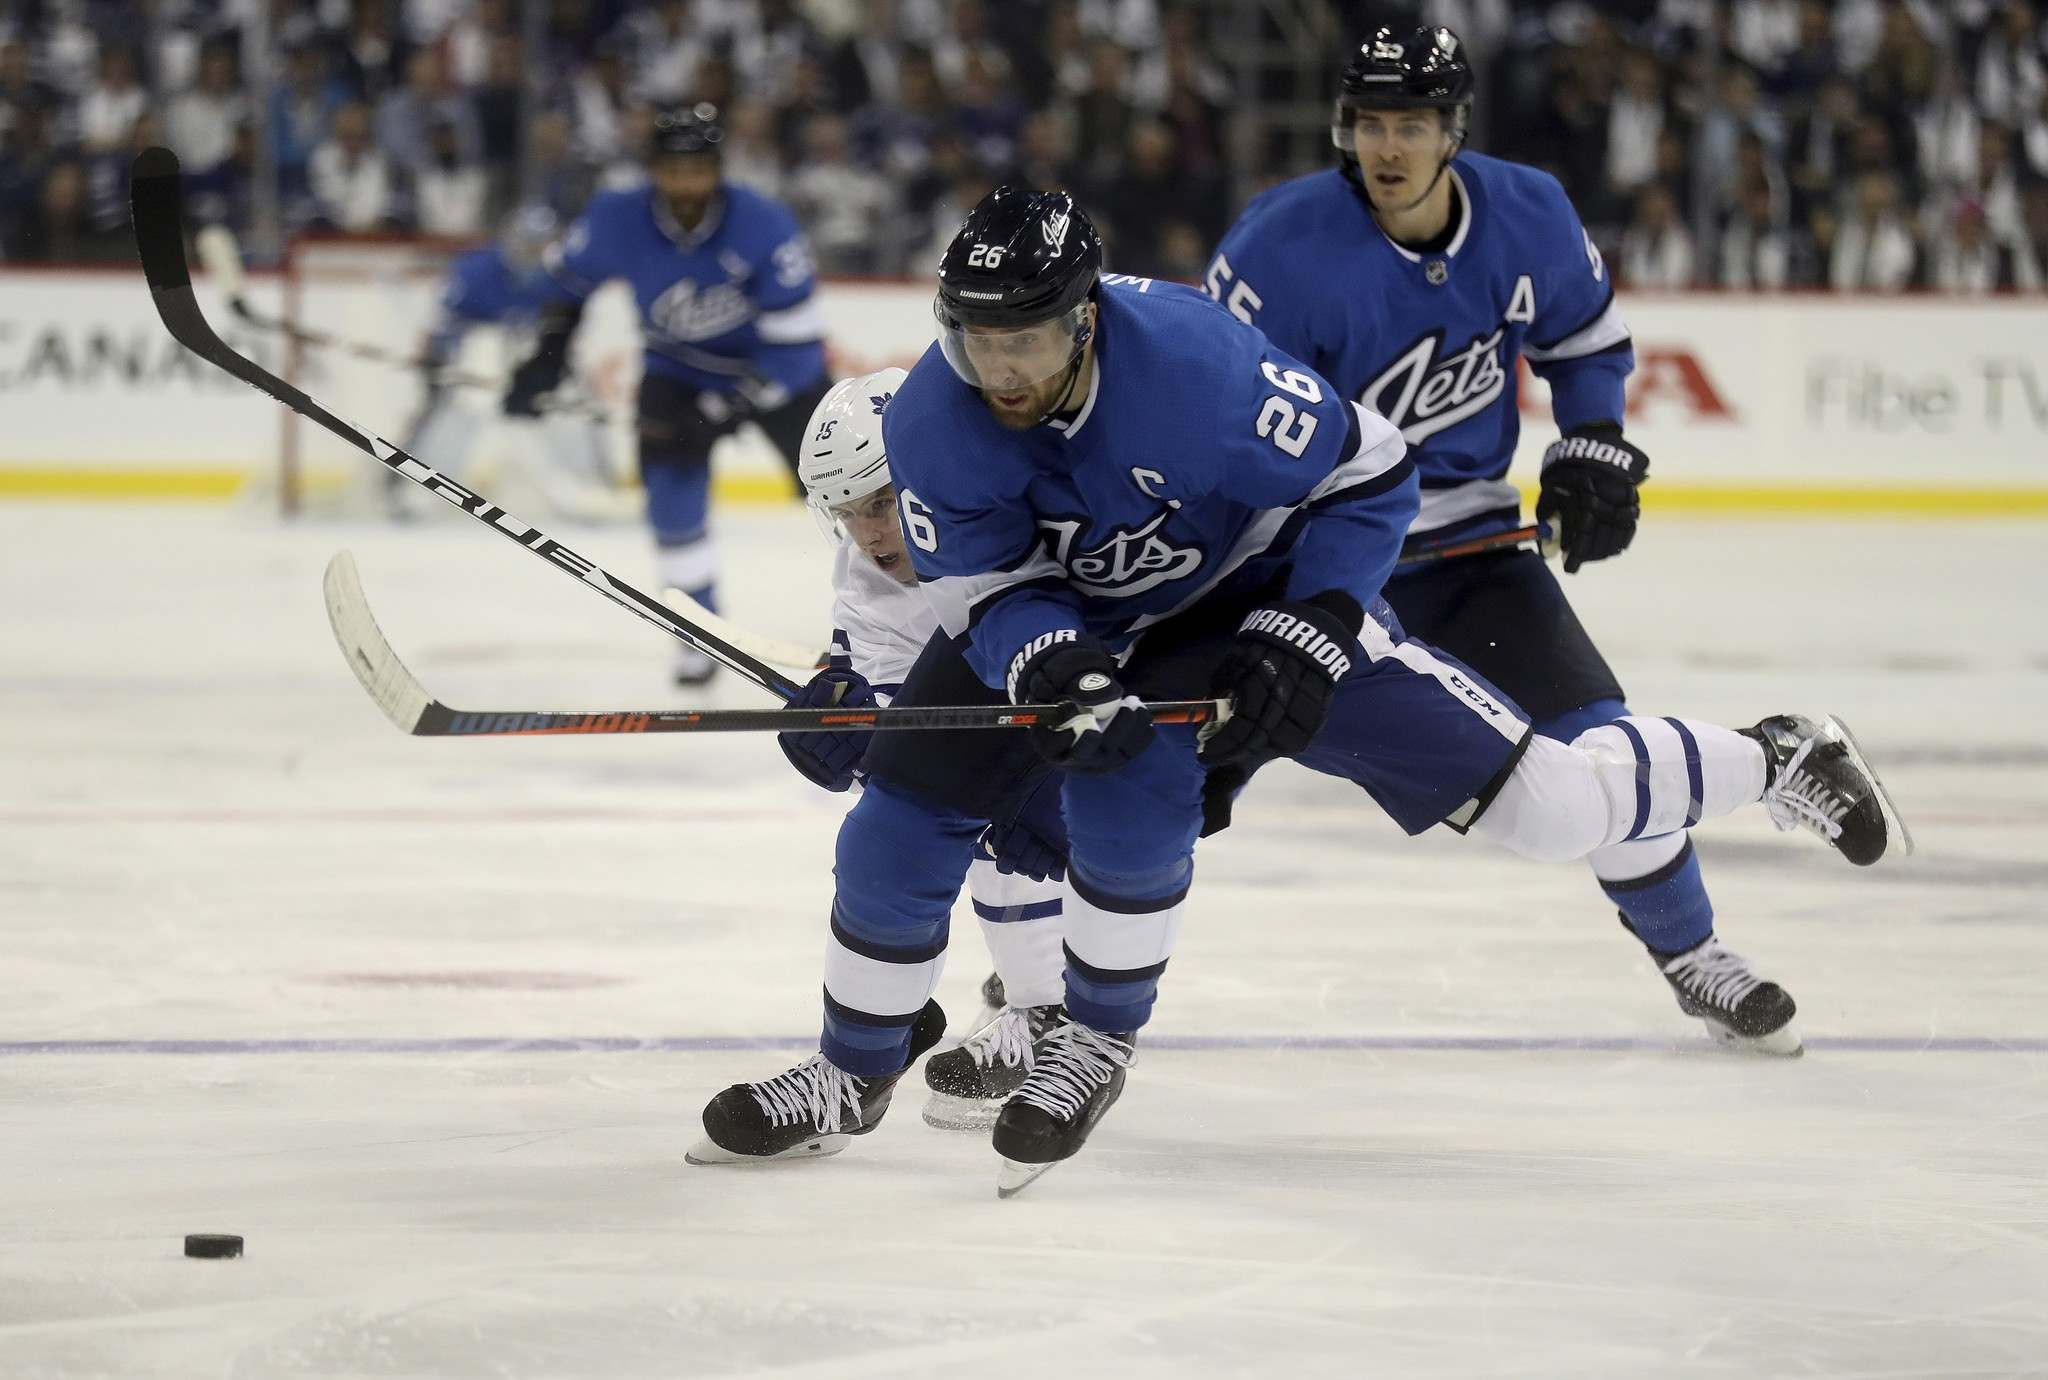 Captain Blake Wheeler has been racking up points, but has already taken a team-leading 17 penalty minutes. (Trevor Hagan / The Canadian Press)</p>